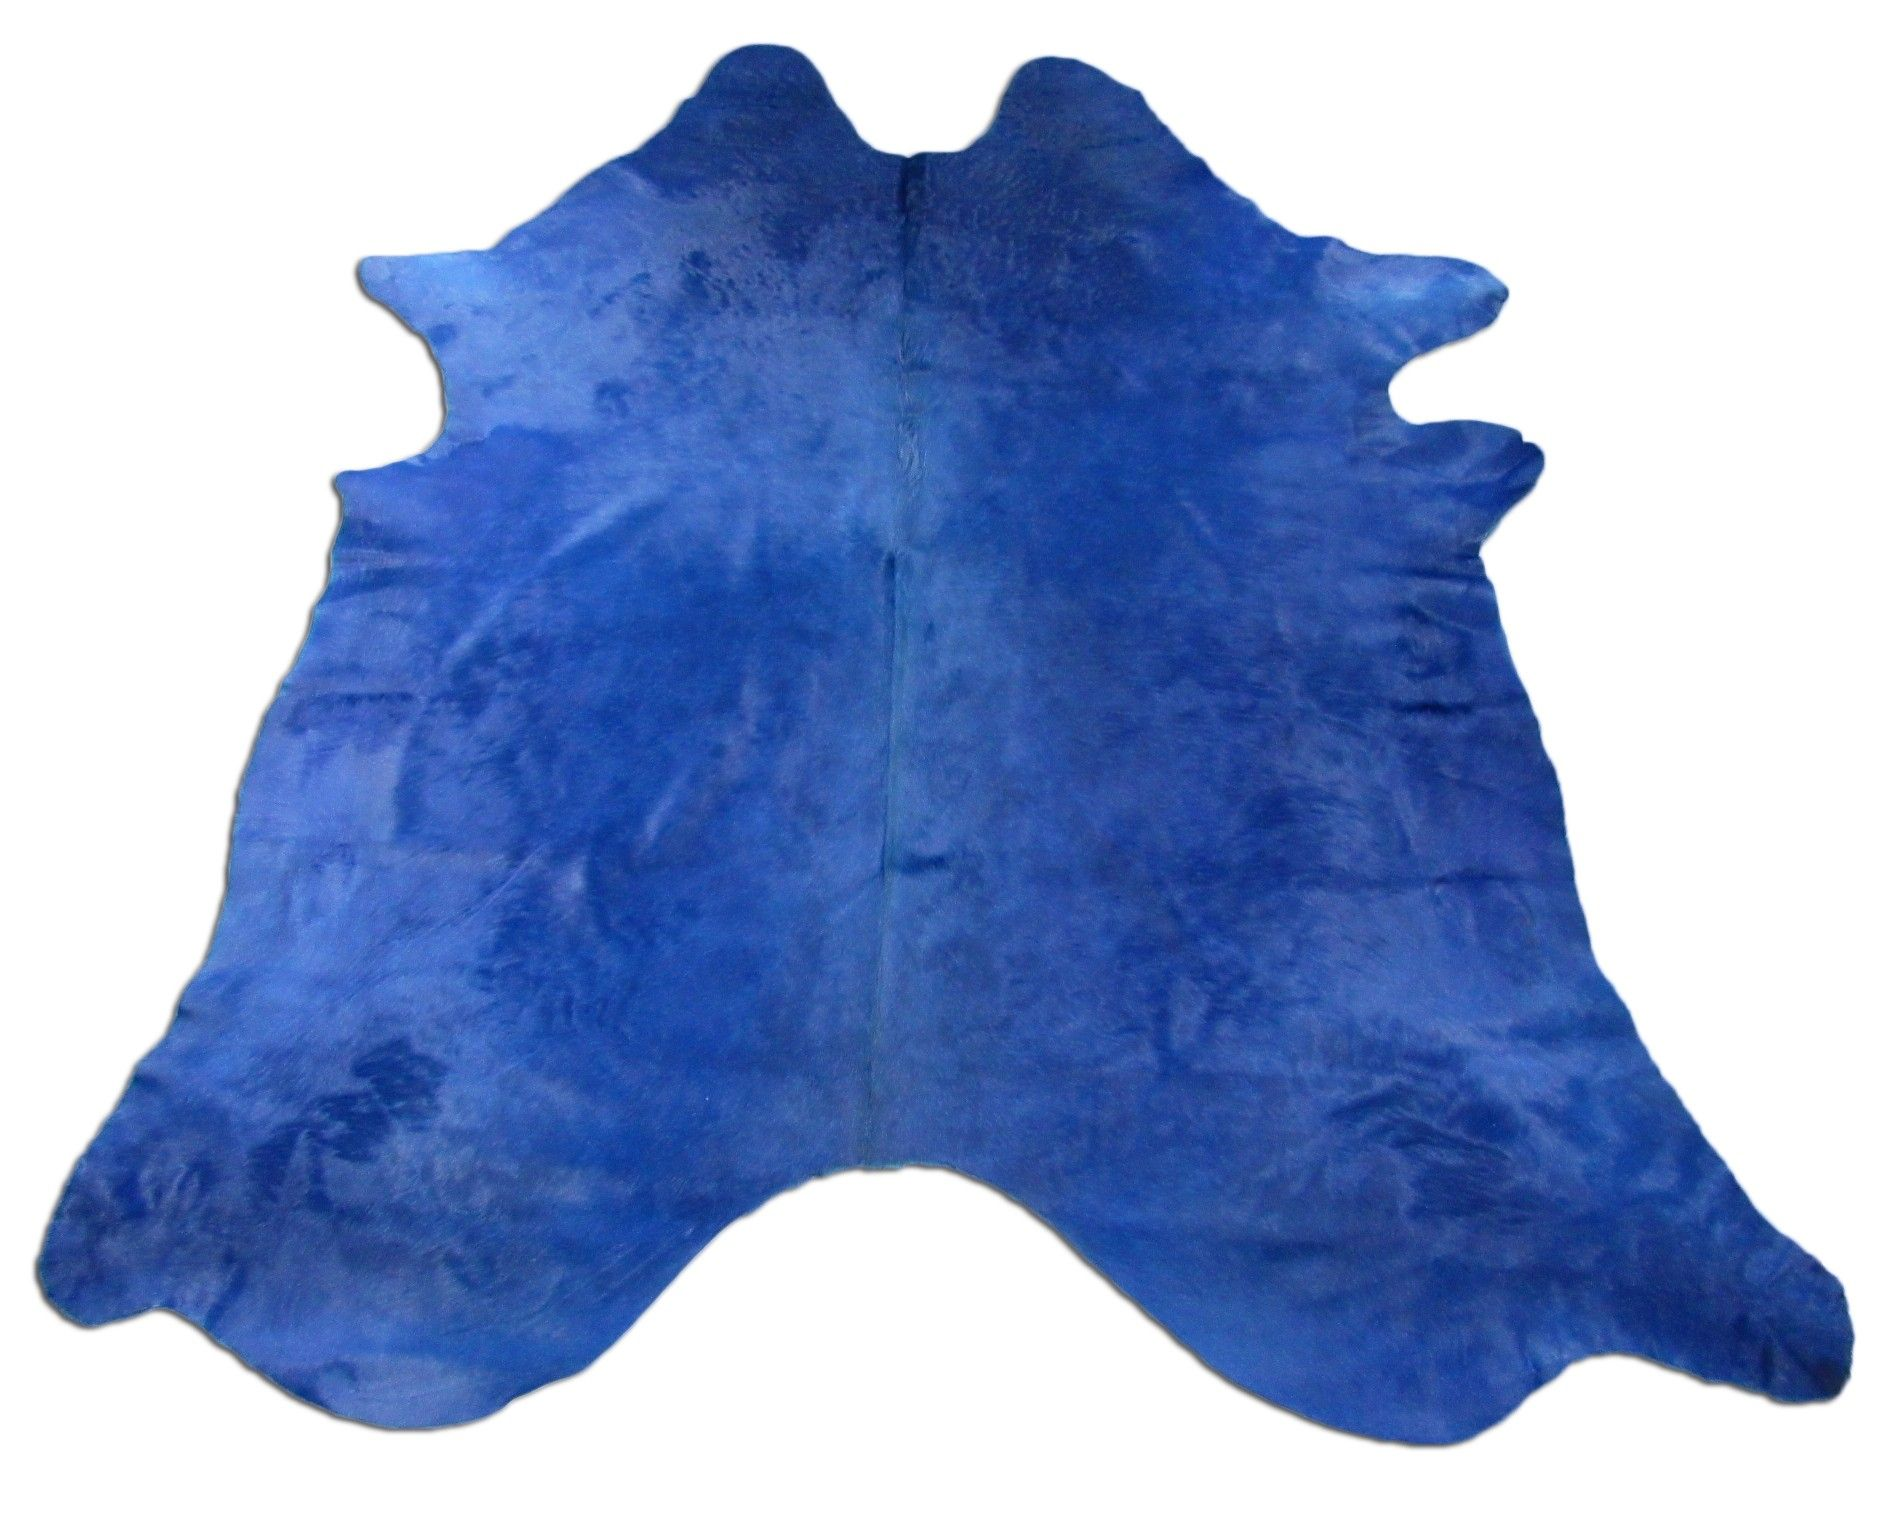 Dyed Royal Blue Cowhide Rug Size 8 X 7 Huge Blue Dyed Cow